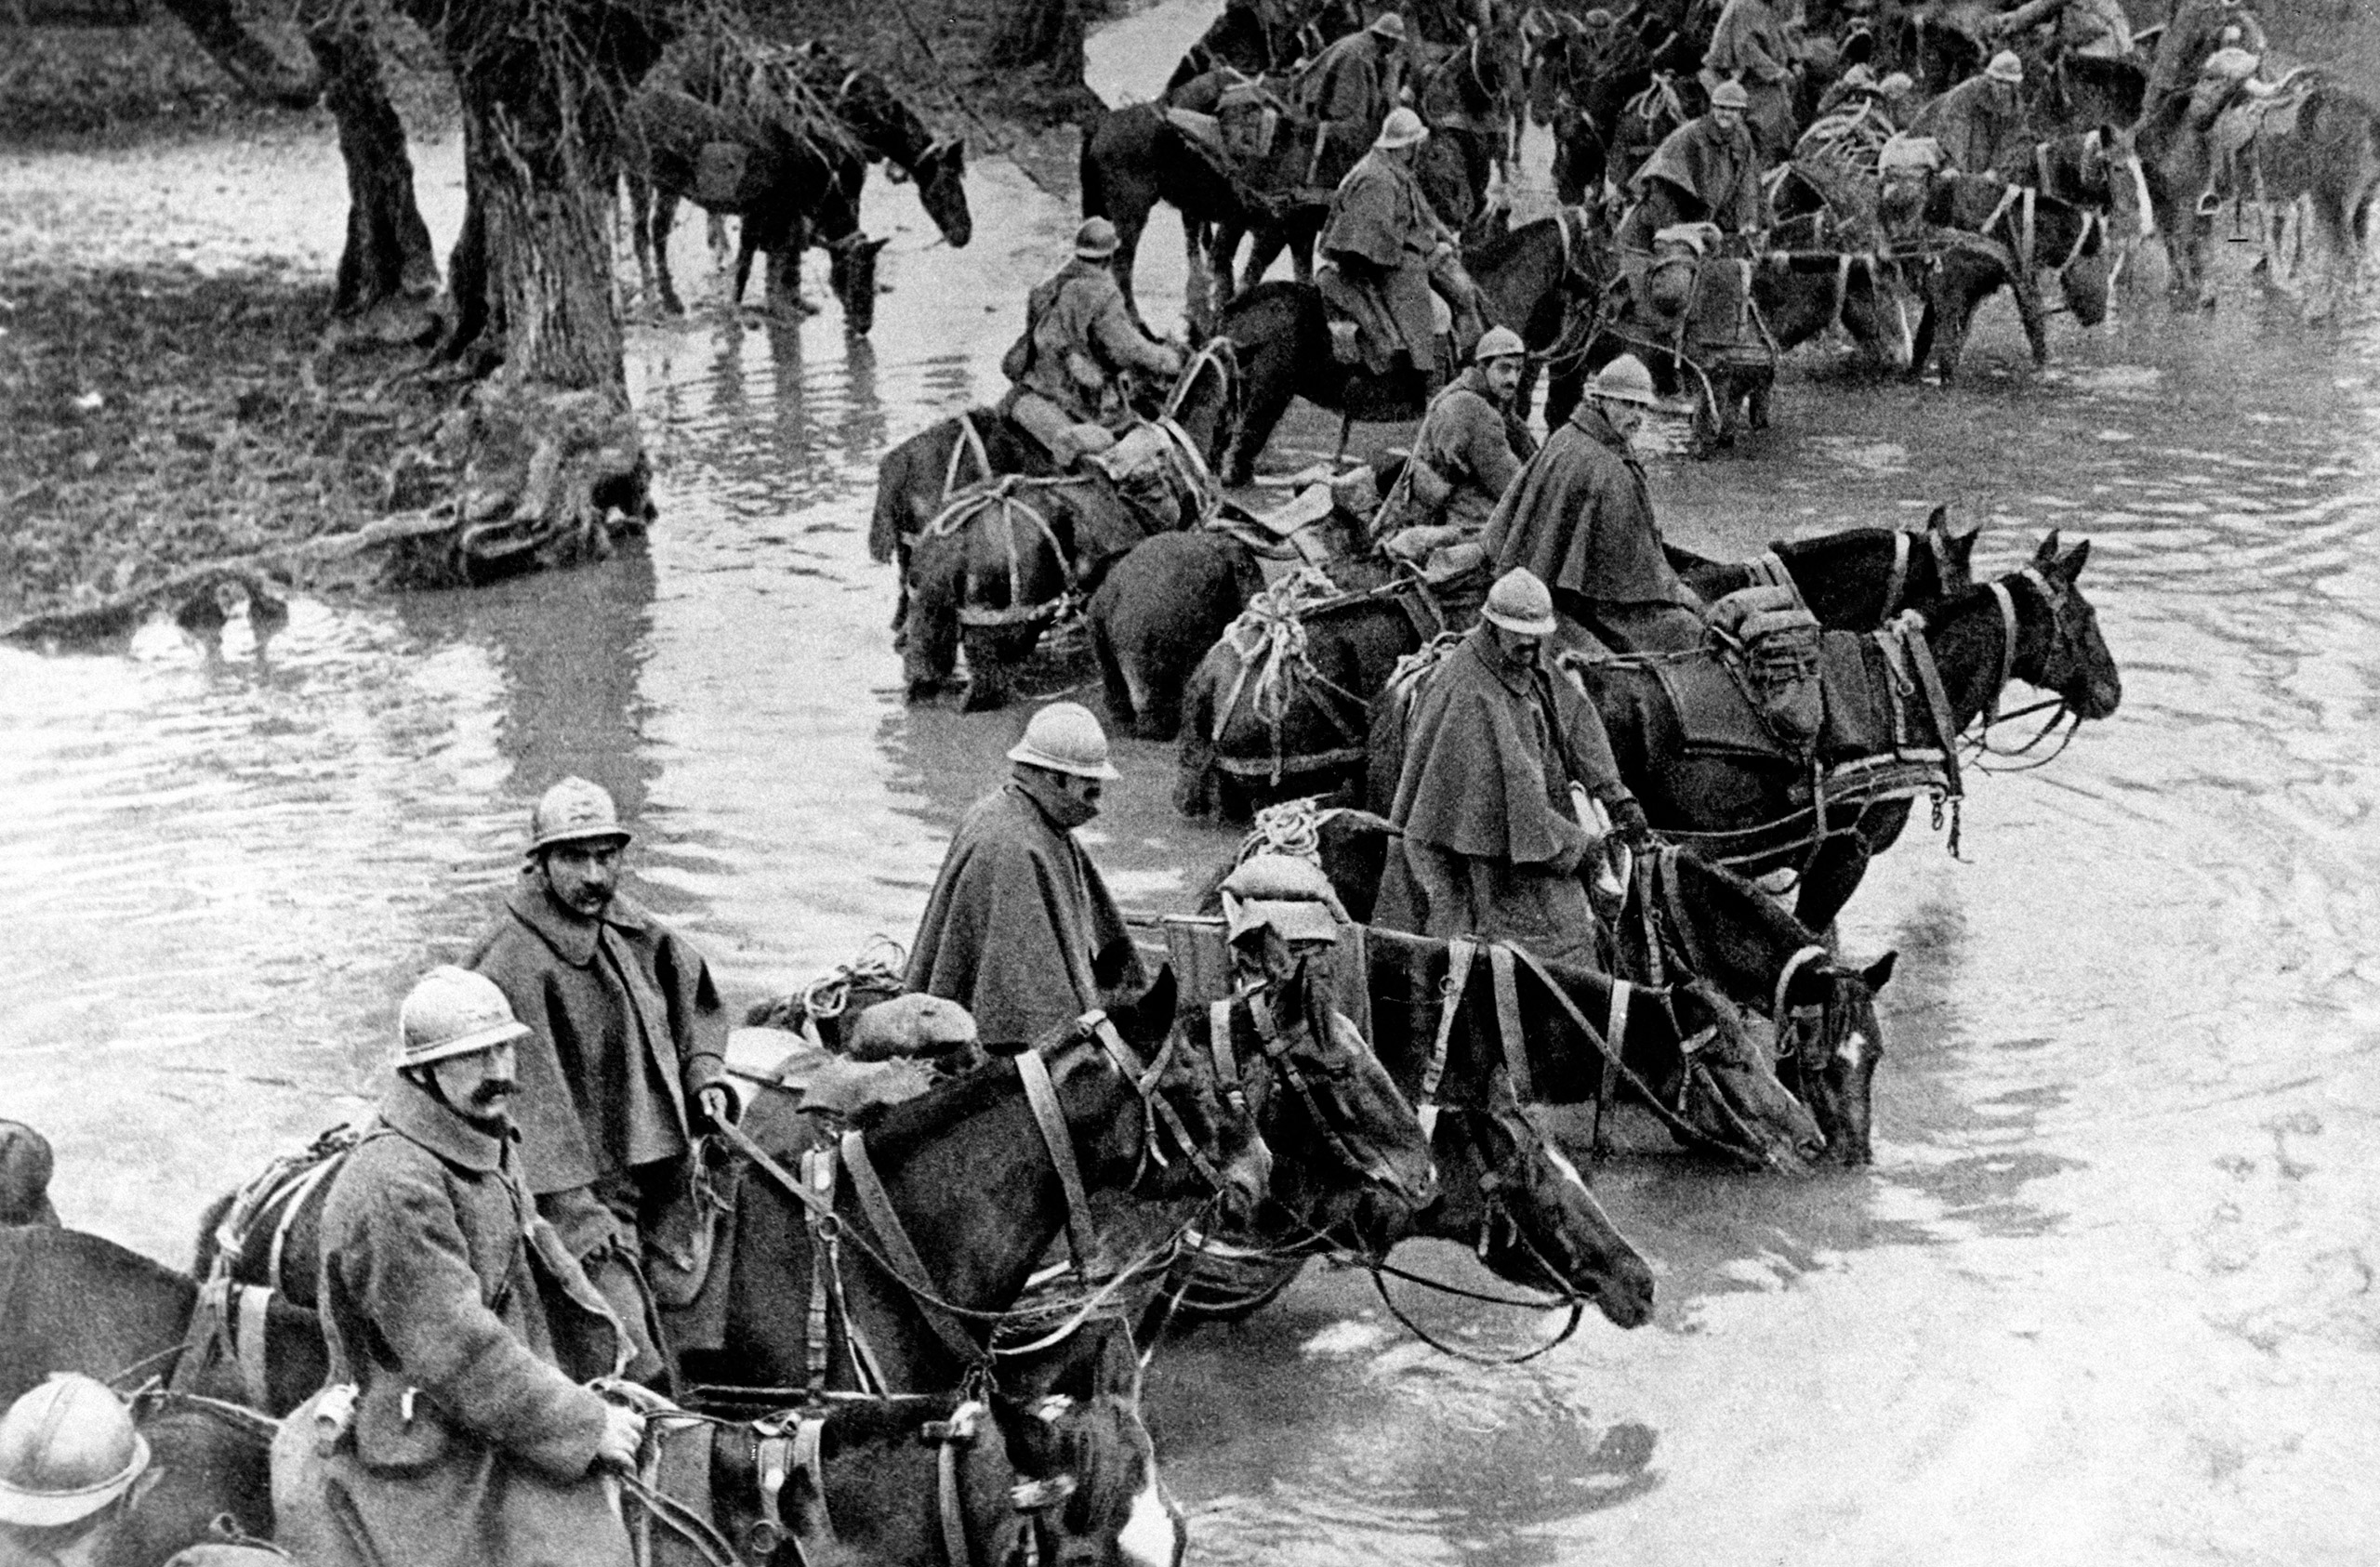 French mounted soldiers crossing a pond. Battle of Verdun, 1916.